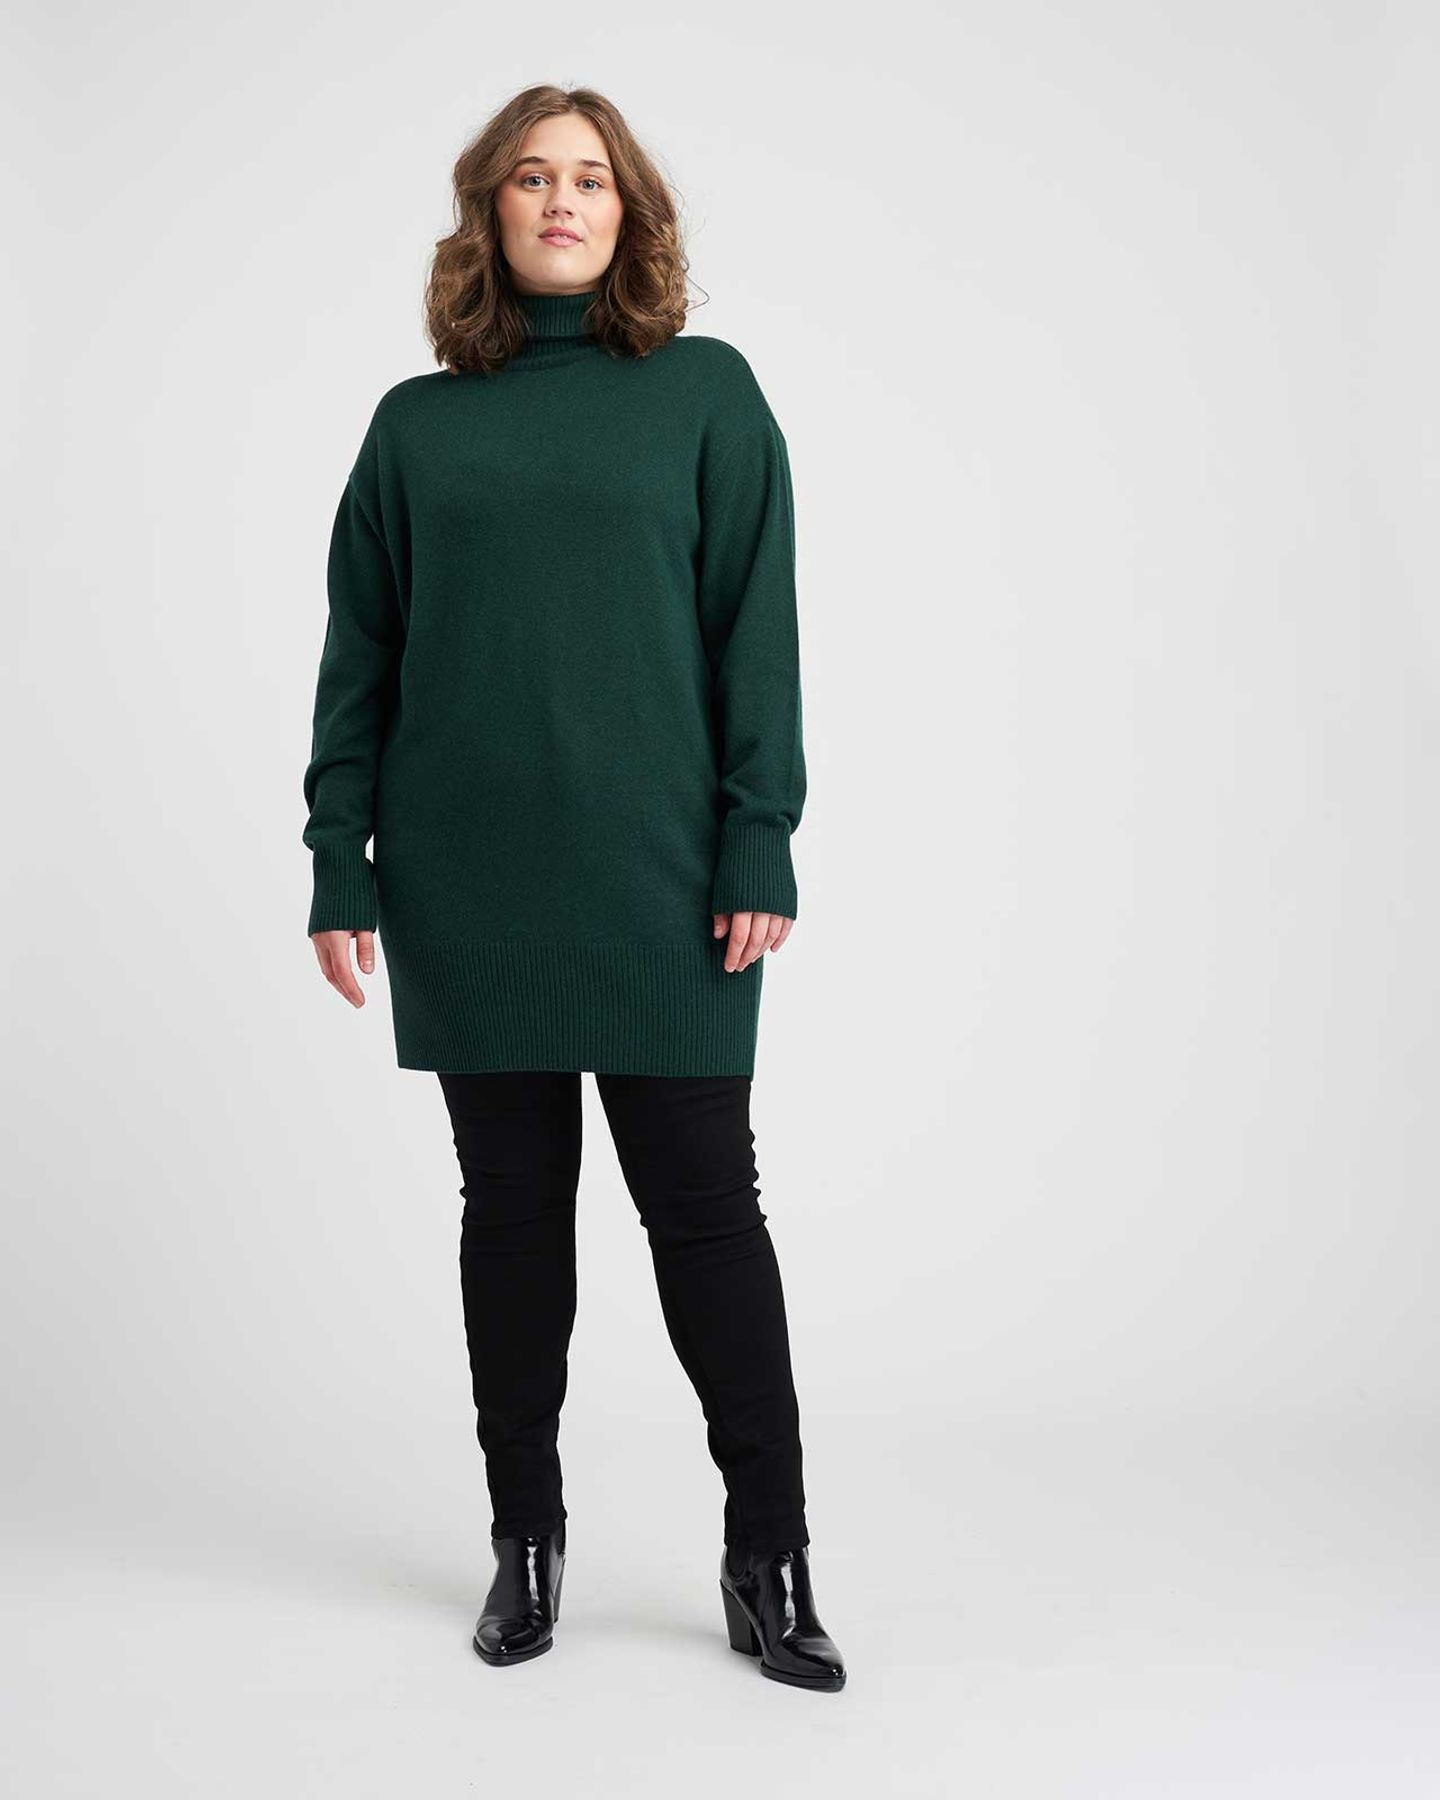 Wheaton Sweater Dress - Emerald - image 0